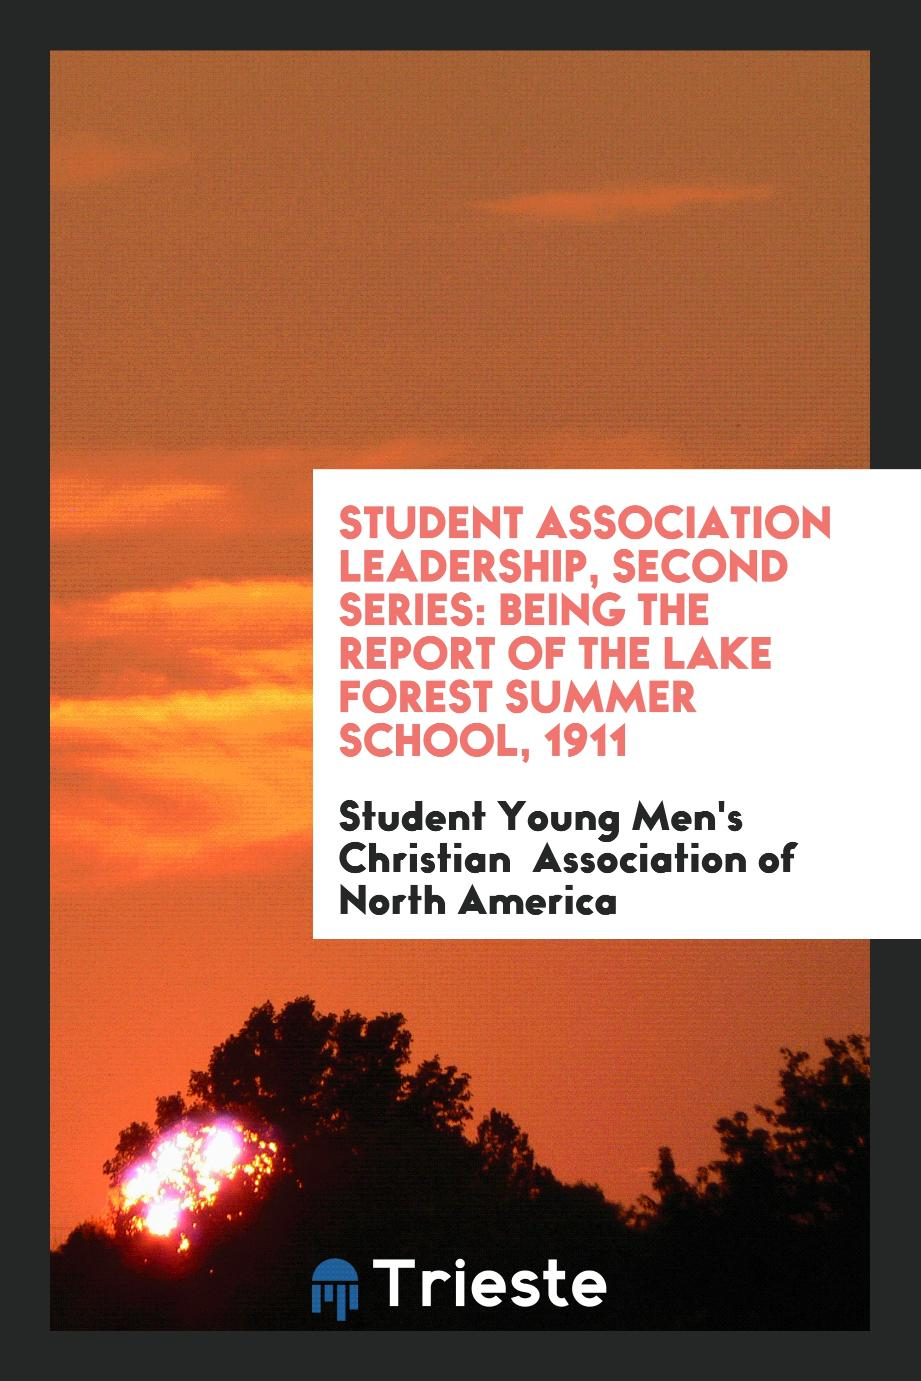 Student Association Leadership, Second Series: Being the Report of the Lake Forest Summer School, 1911